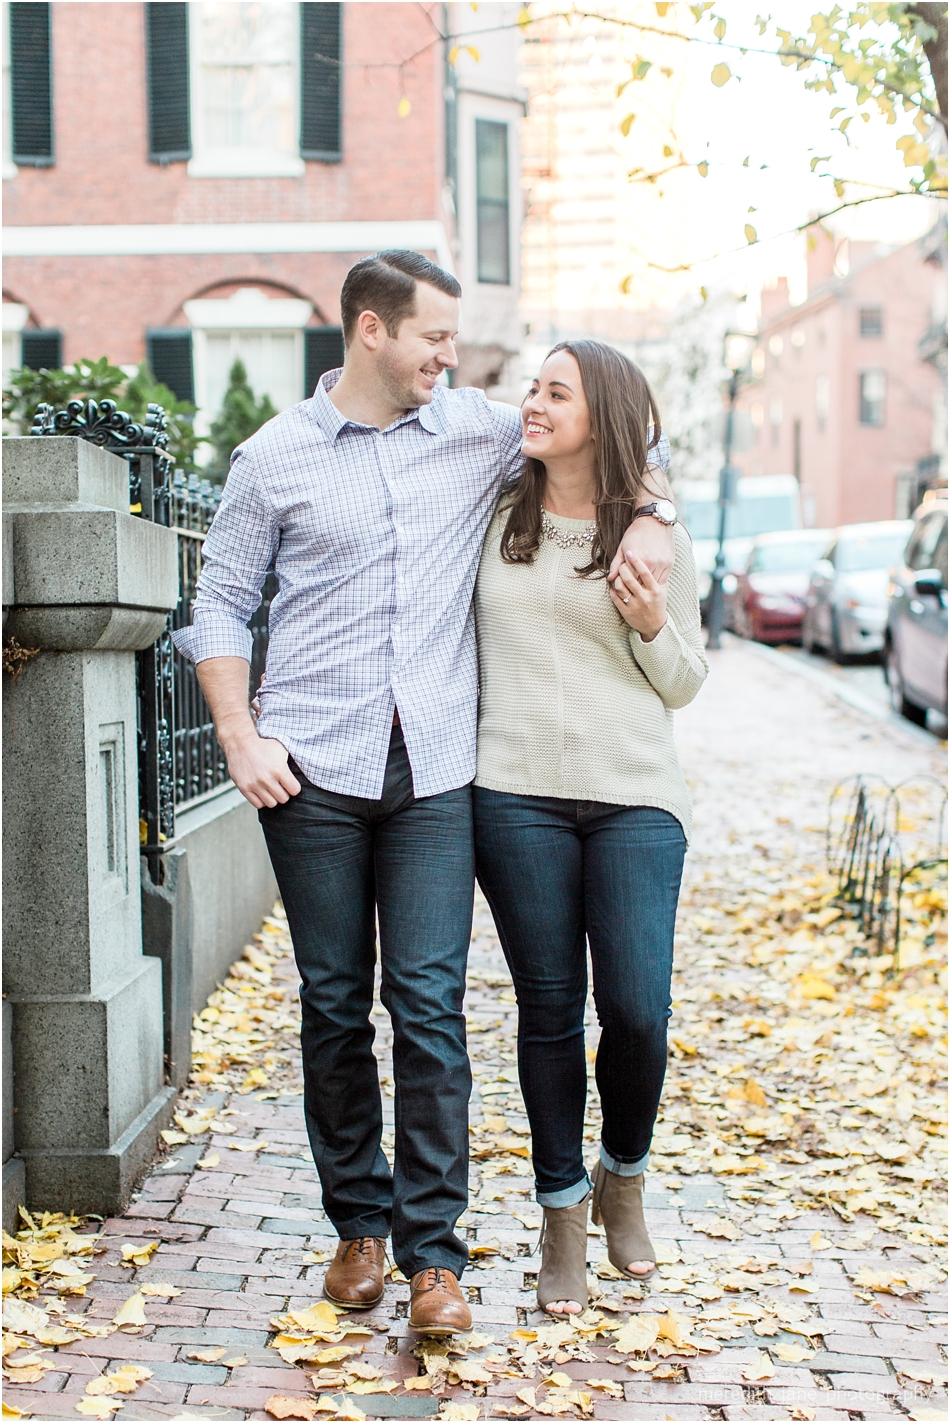 seaport_boston_massachusetts_engagement_common_fall_foliage_cape_cod_wedding_photographer_Meredith_Jane_Photography_photo_0963.jpg